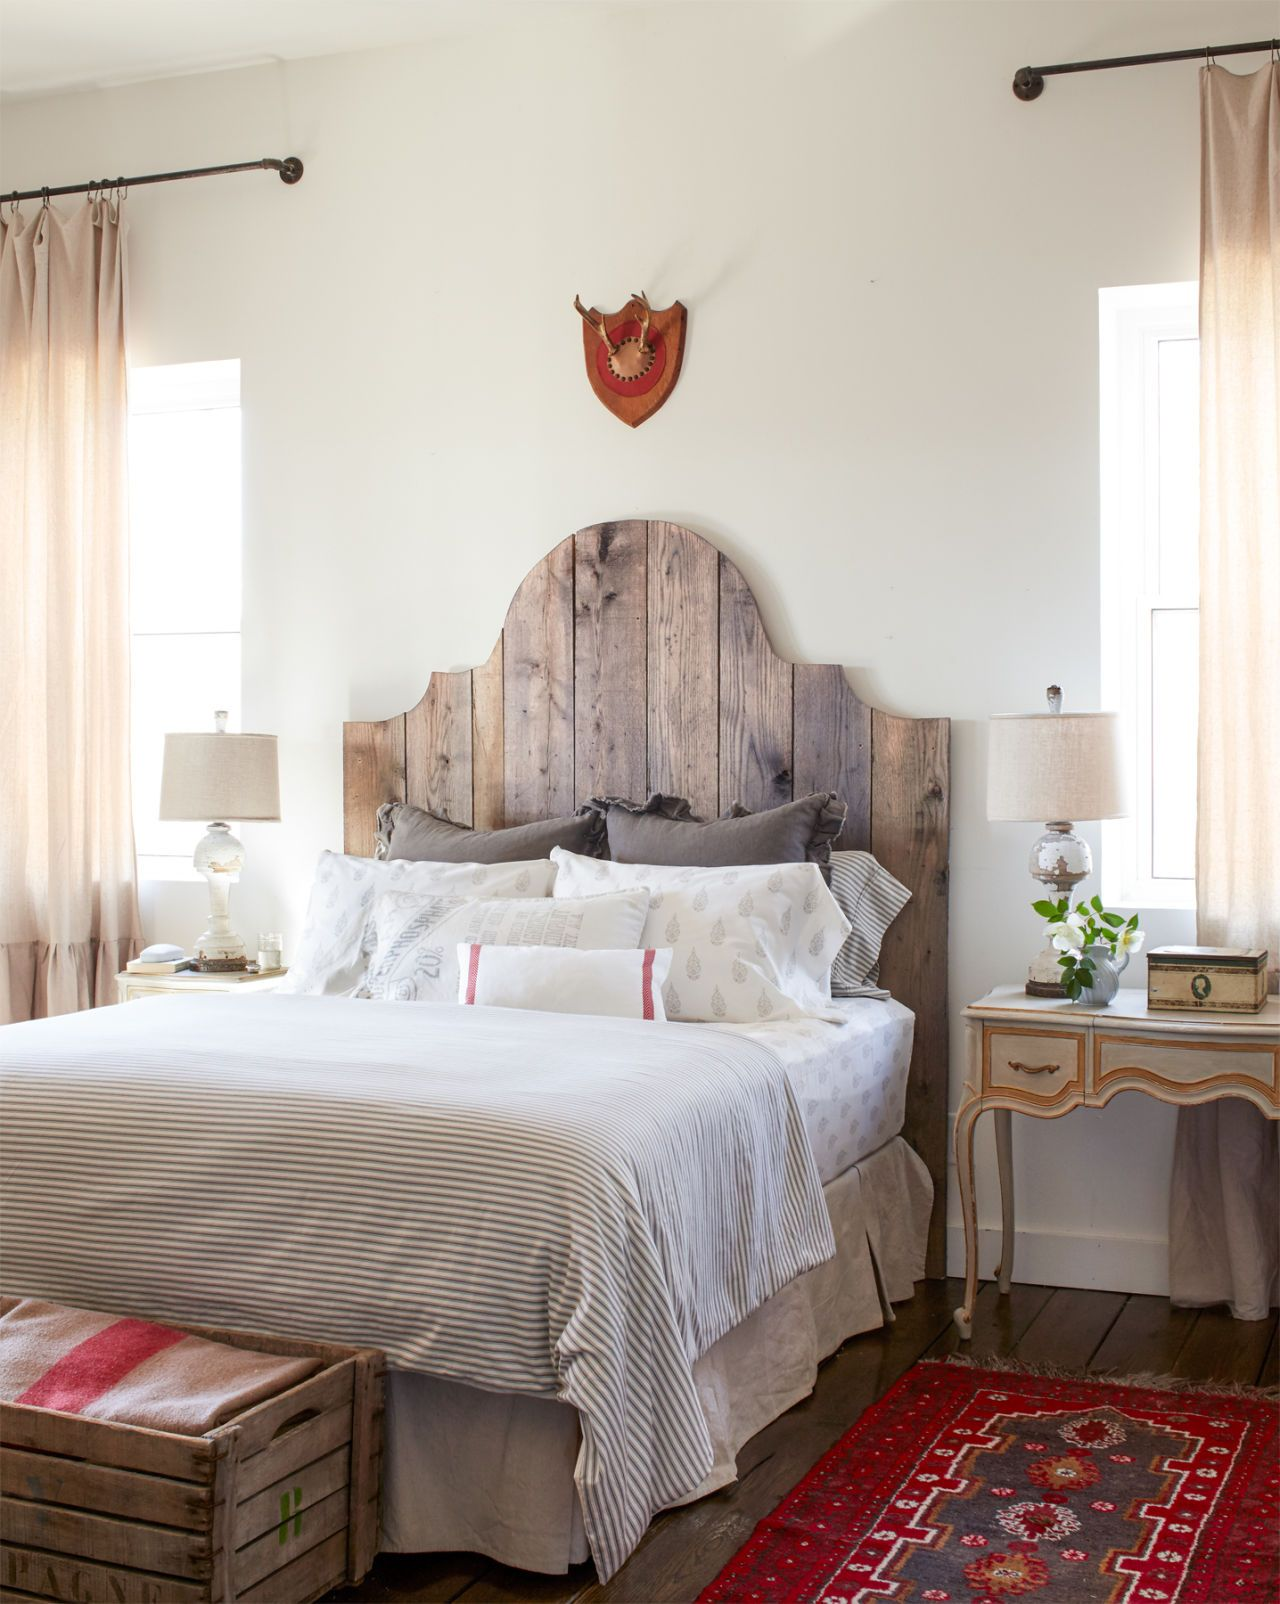 Peek Inside a Rustic, Reclaimed, and Repurposed Cabin in Tennessee